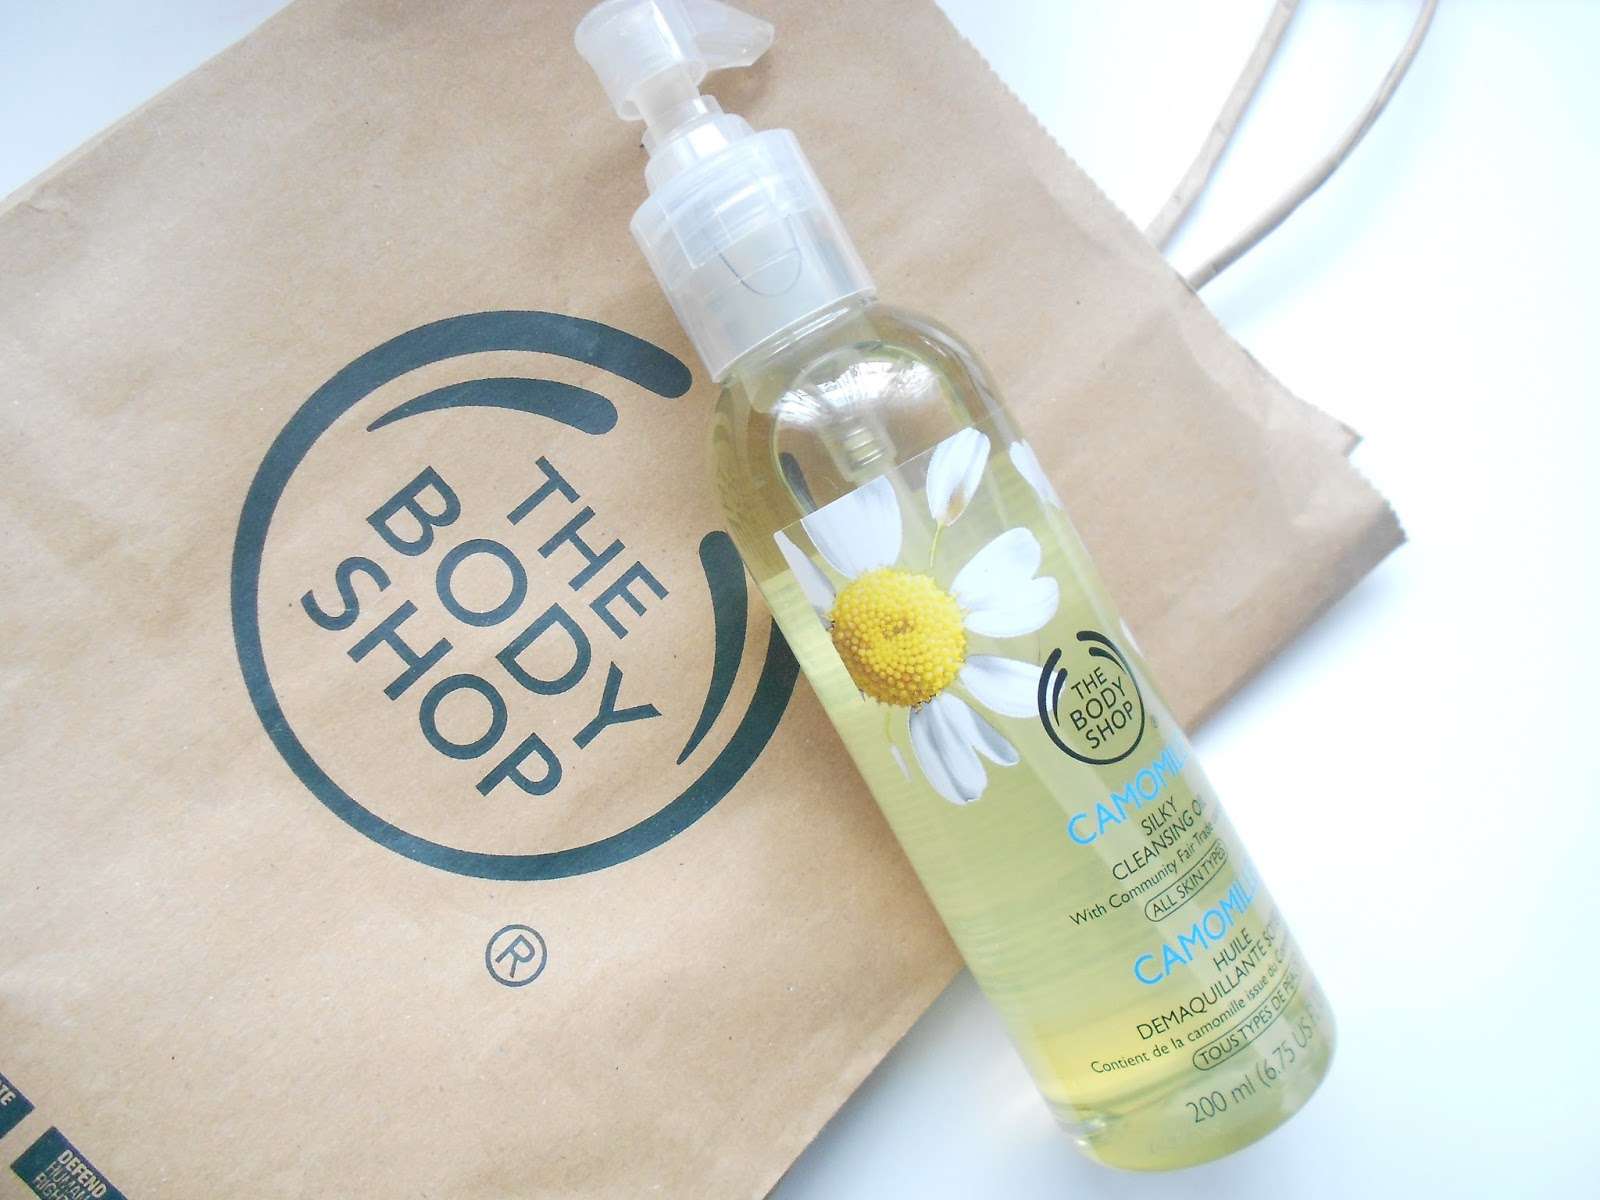 The Body Shop Camomile Silky Cleansing Oil Review